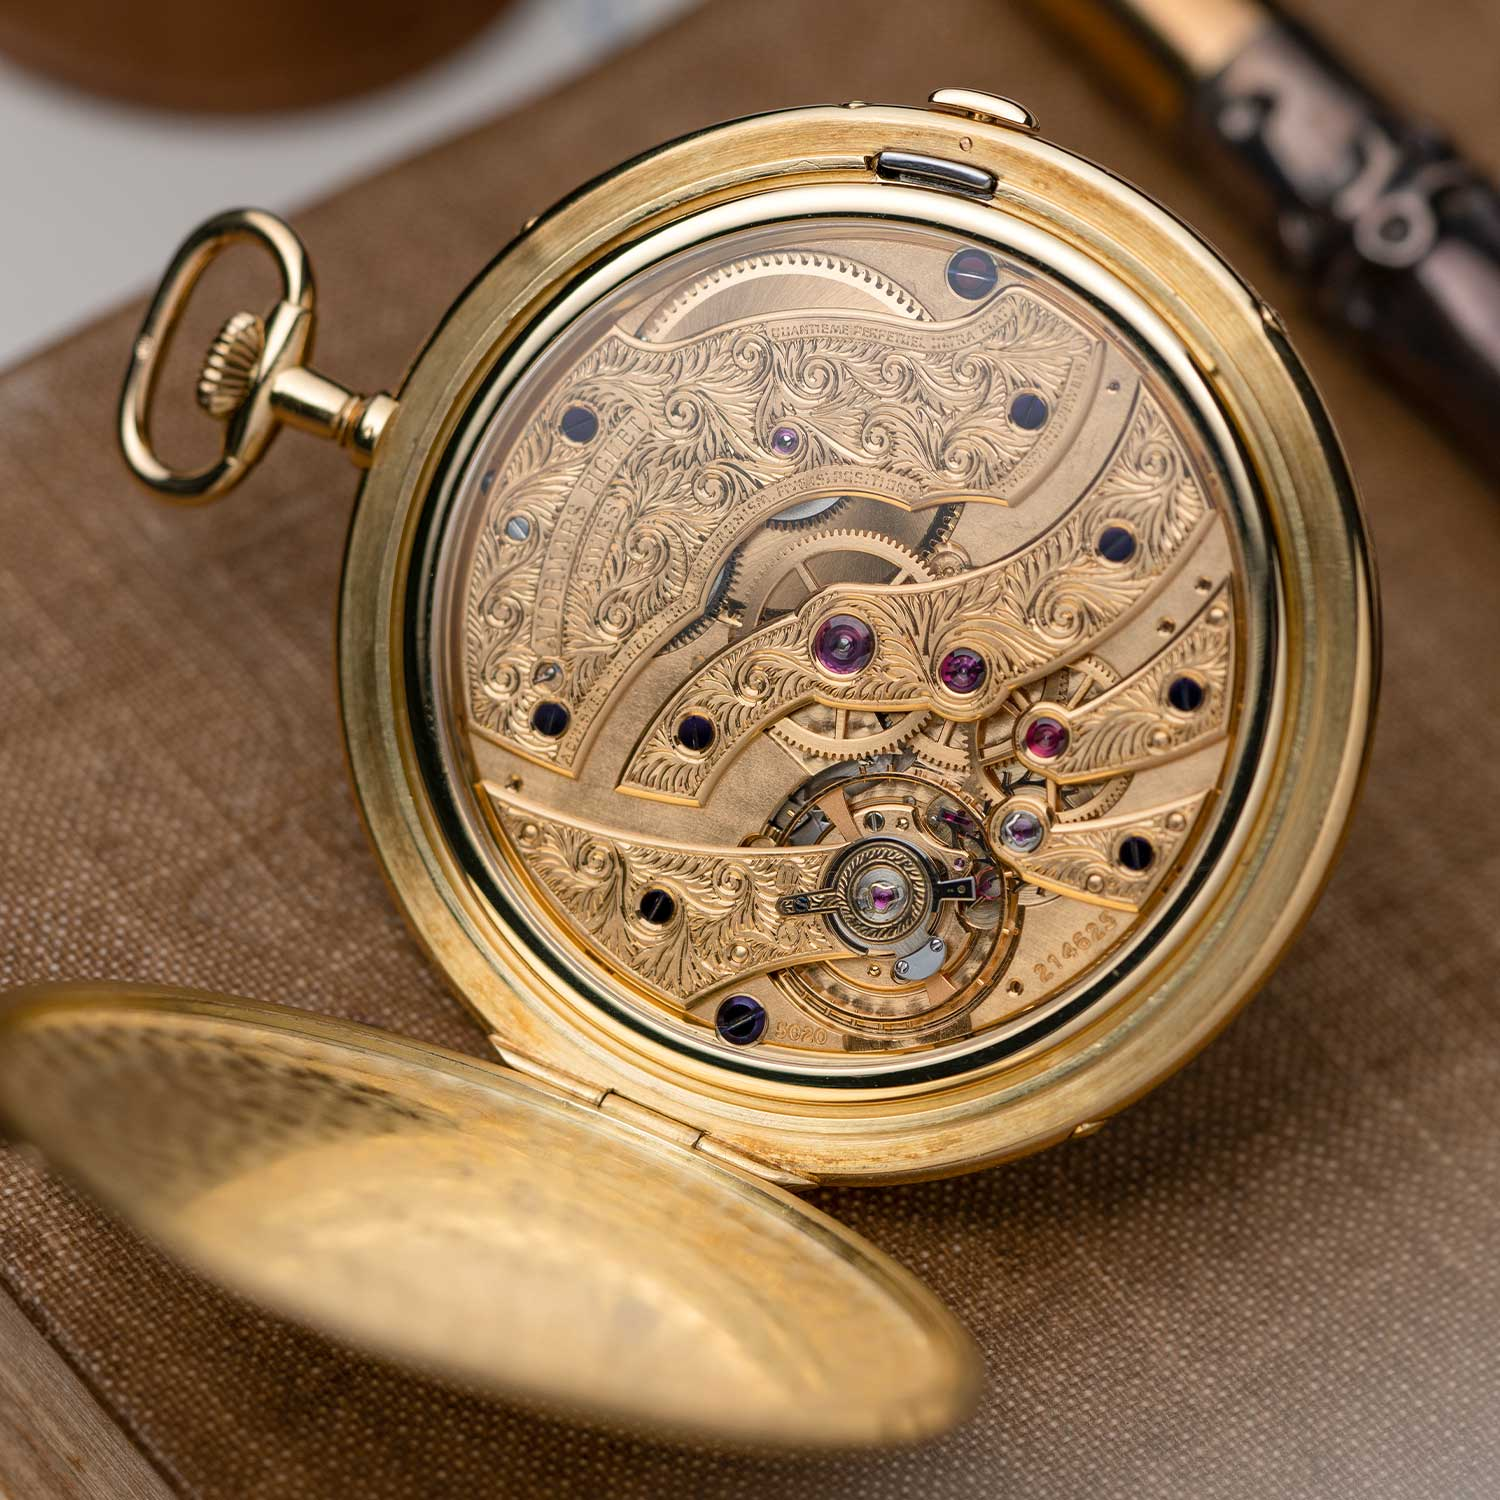 The superbly engraved bridges seen through the display caseback of the Perpetual Calendar pocket watch that was gifted to Mr Georges Golay in recognition of his 25 years of long service to the brand; the watch seen here is presently part of the Pygmalion Gallery's private collection (Image: Photo and watch, property of Pygmalion Gallery)